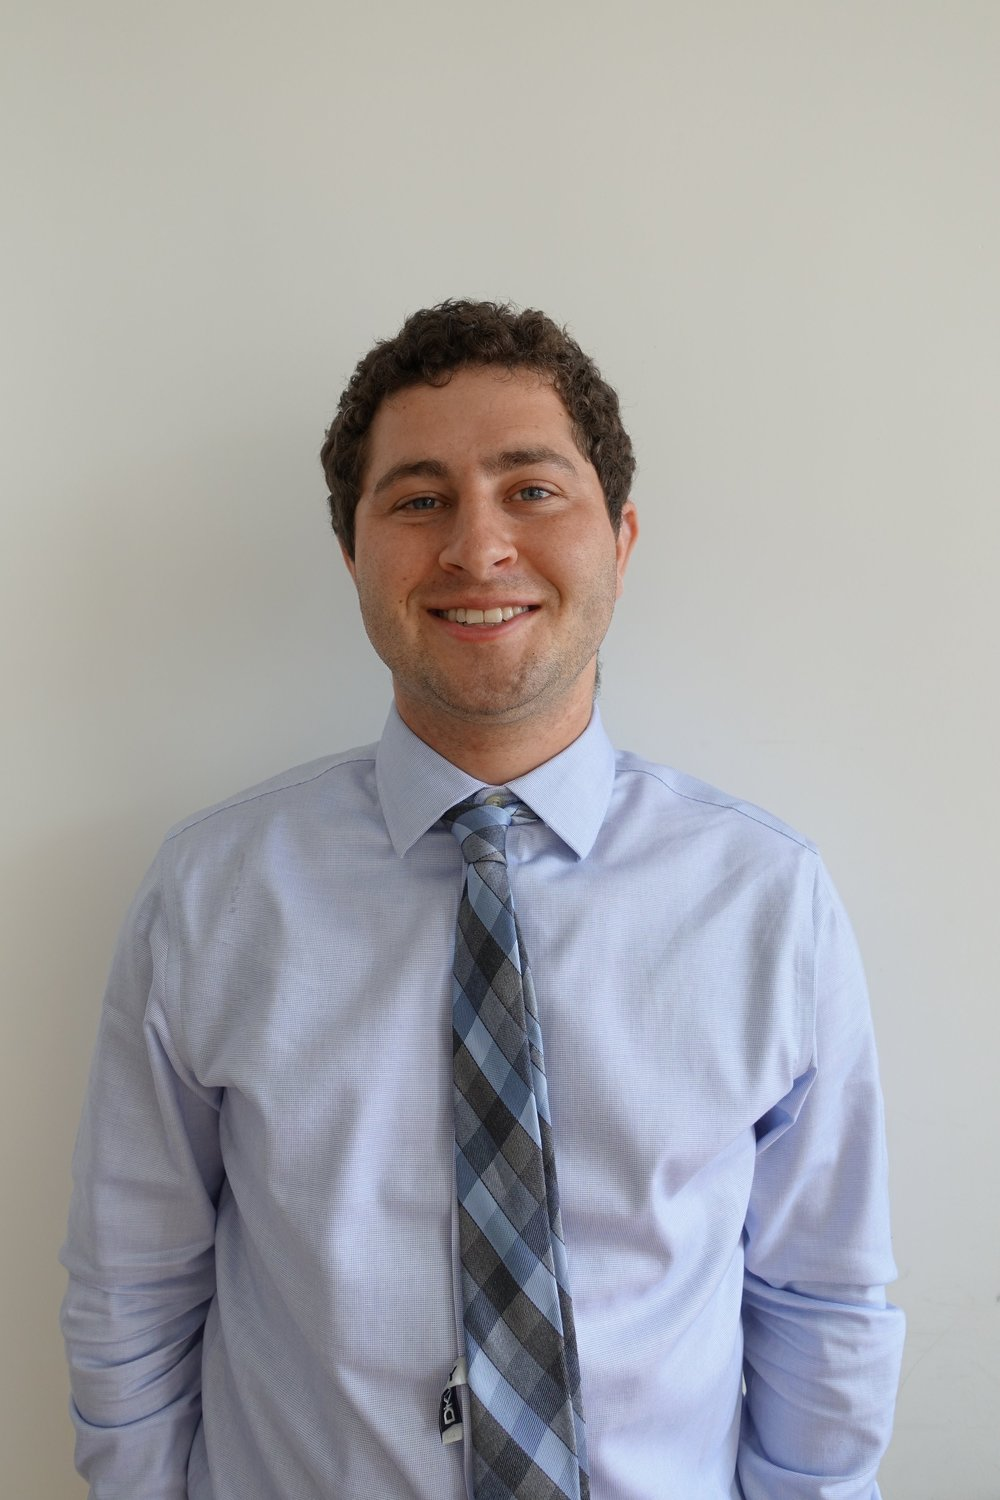 Adam SchutzmanBaltimore, MD - Adam Schutzman is from Bellmore, New York, and just graduated from Duke University in North Carolina. Adam majored in Public Policy with a minor in Spanish. He is passionate about criminal justice reform and looks forward to working with ex-offenders during my time in the Baltimore office. A few other notes about Adam are he is a movie aficionado. And his favorite place in the world is Cape Town, South Africa, somewhere he traveled to at the end of my sophomore year in college. He also loves playing tennis or basketball when he has free time.